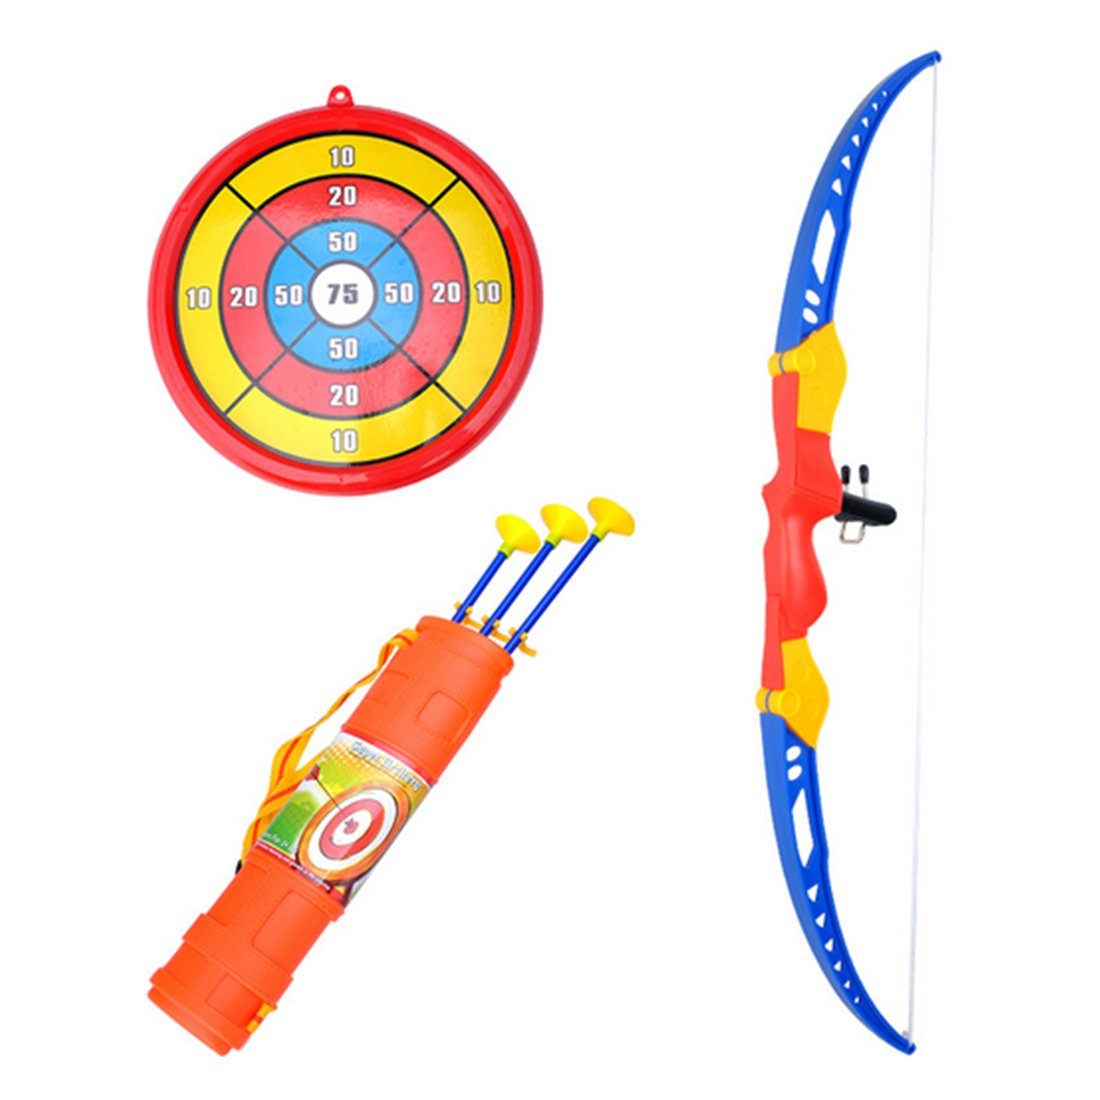 Lingxuinfo Archery Shooting Set for Kids Archery Bow Arrow Set with Target and Accessories